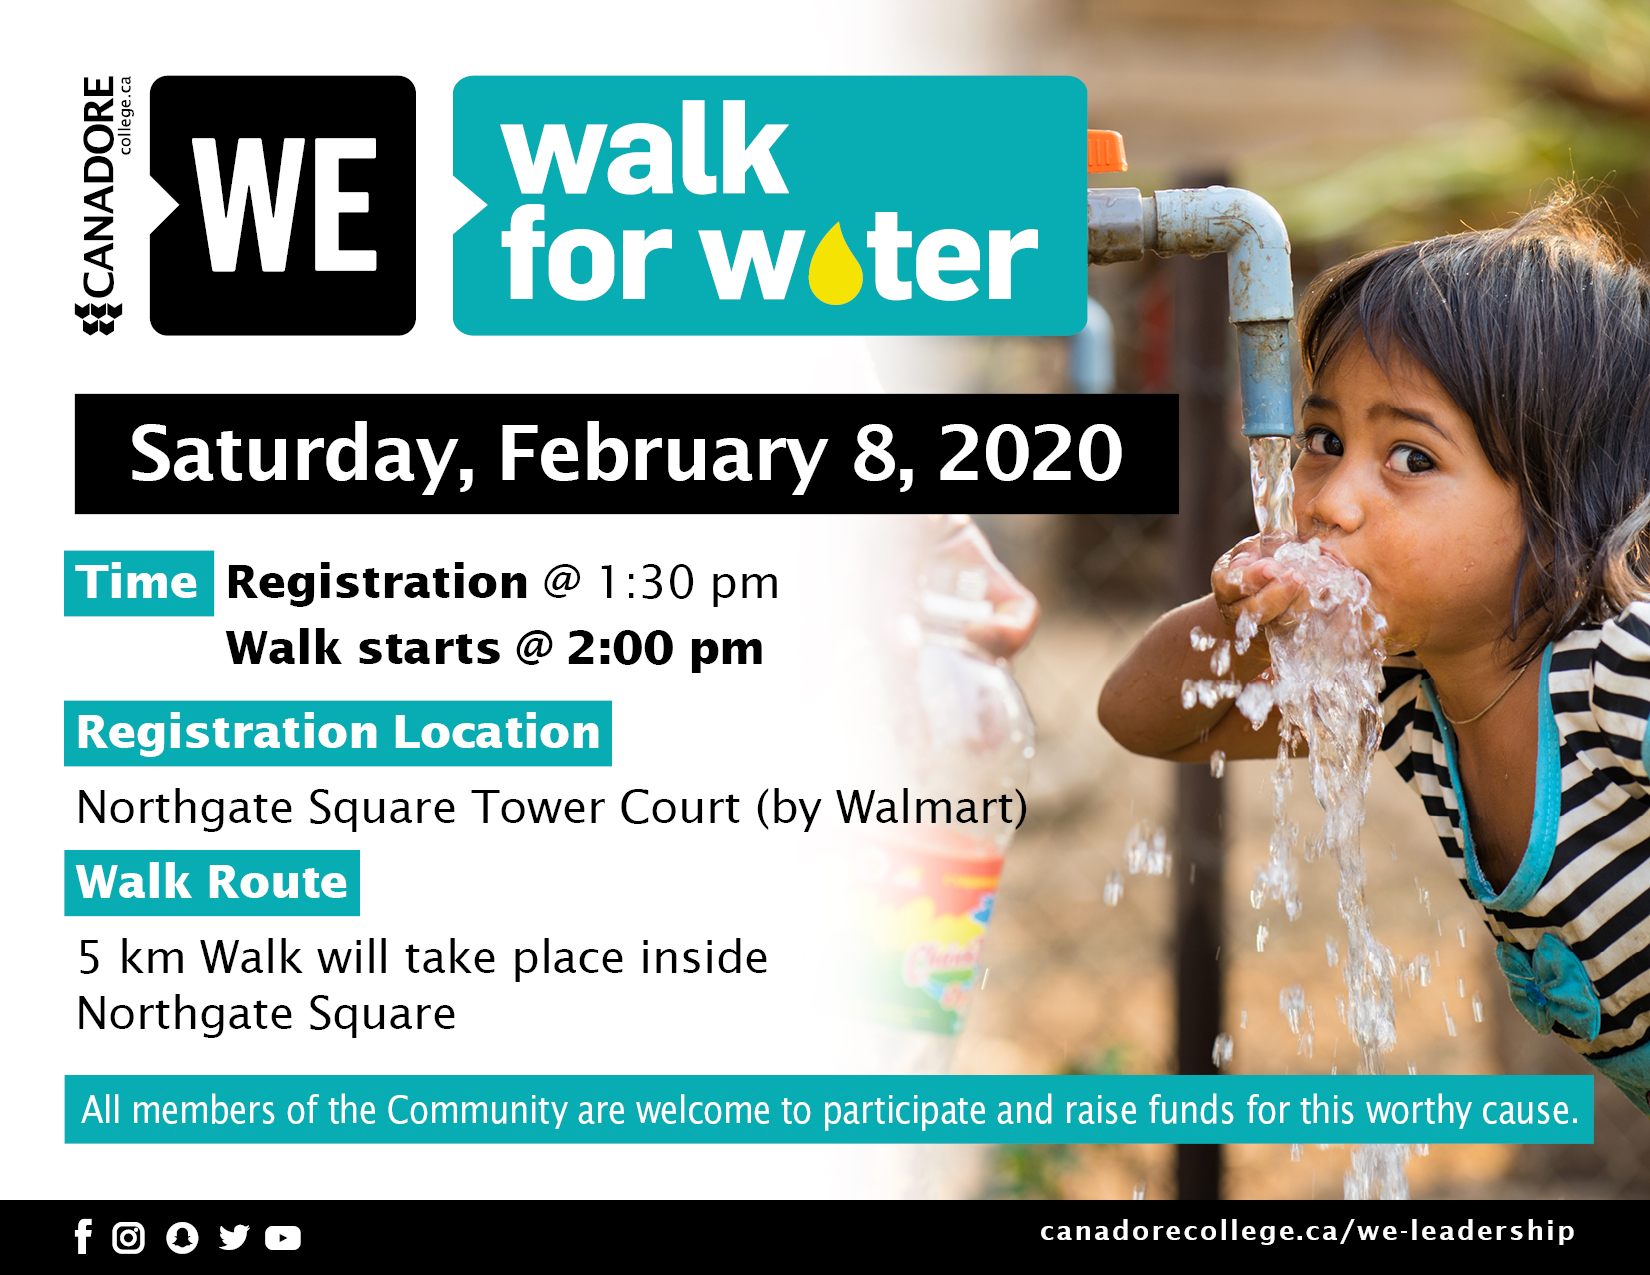 https://cdn.agilitycms.com/canadore-college/experience/weleadership/5099-mk-we-walk-for-water-tv-screen-revised-jan-2020.jpg